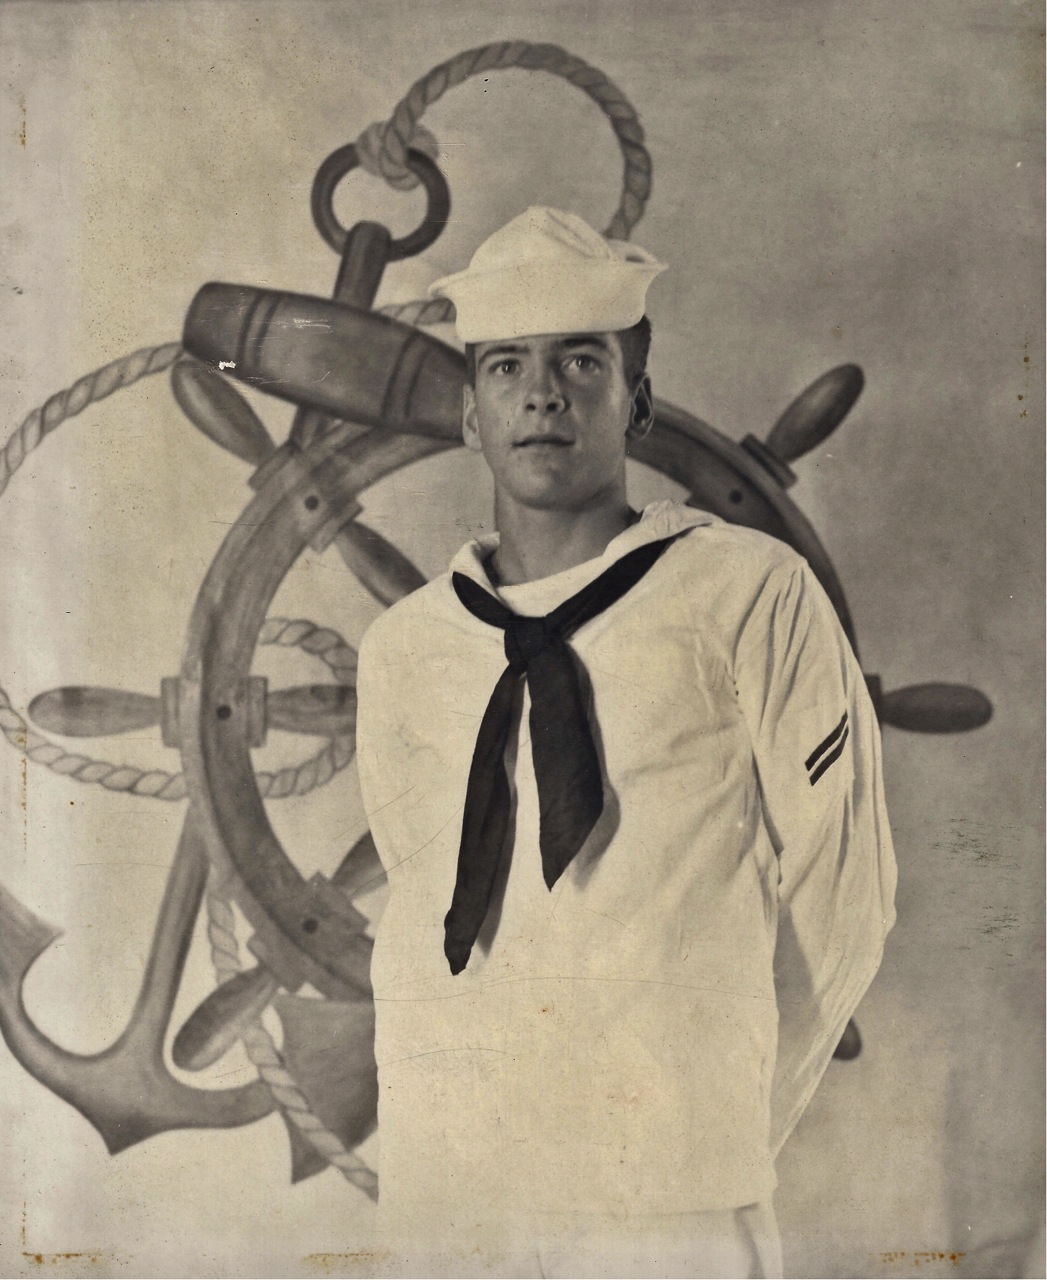 Jack Lawliss 1951 the sailor